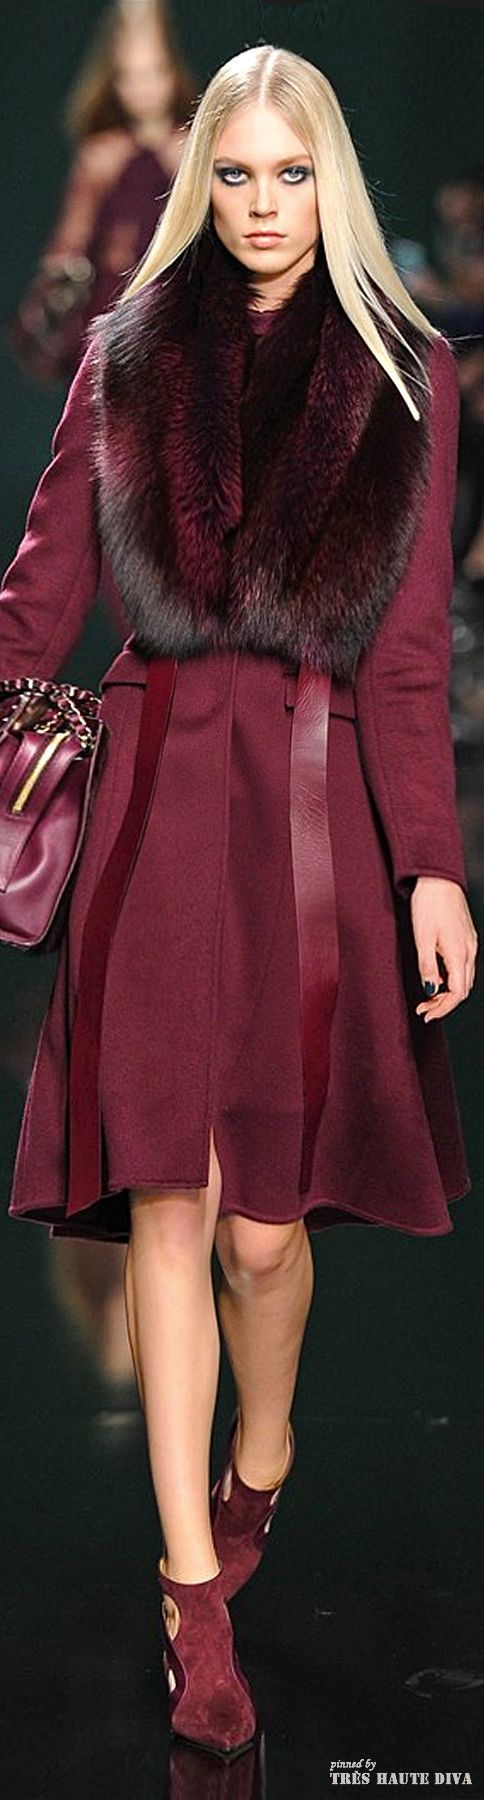 #Paris Fashion Week Elie Saab Fall/Winter 2014 RTW